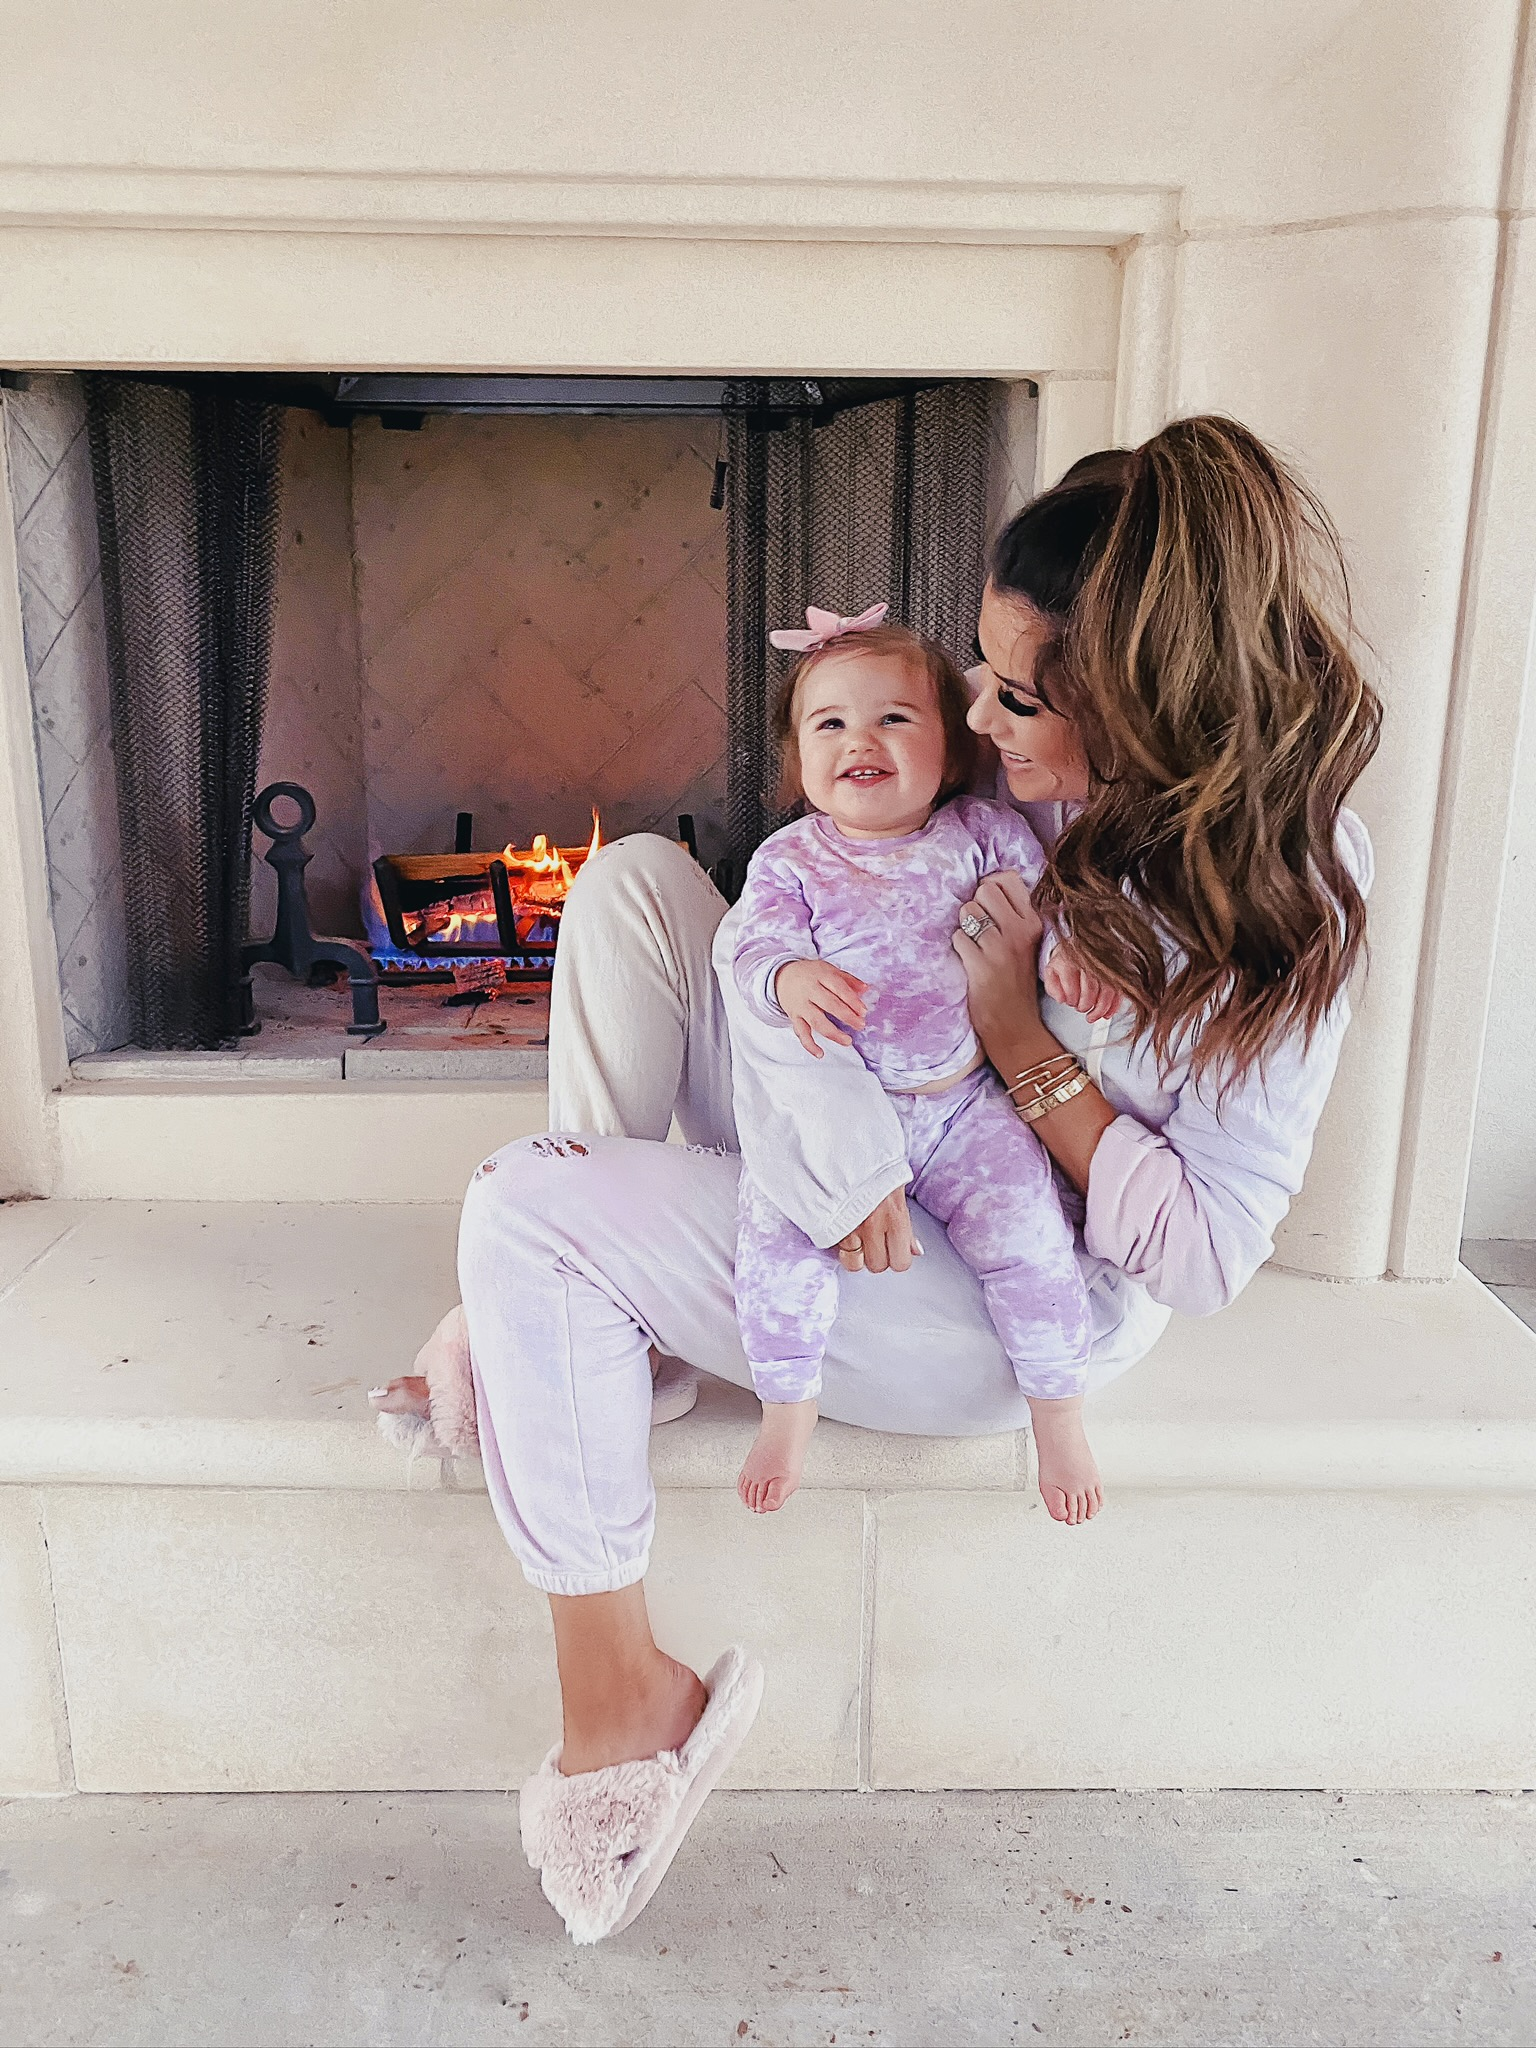 Comfortable Loungewear by popular US fashion blog, The Sweetest Thing: image of Emily Gemma wearing a Z Supply The Pale Blush Rugby Stripe Weekender Sweater and Nordstrom Zella leggings.| Comfortable Loungewear by popular US fashion blog, The Sweetest Thing: image of Emily Gemma and her daughter Sophie wearing a n:philanthropy GAMBLE SWEATSHIRT, n: philanthropy DERBY JOGGER, Amazon HALLUCI Women's Cross Band Soft Plush Fleece House Indoor or Outdoor Slippers, and Amazon VAENAIT BABY 12M-12 Toddler Kids Boys Girls 100% Cotton Marbling Sung Fit Sleepwear Pajamas.